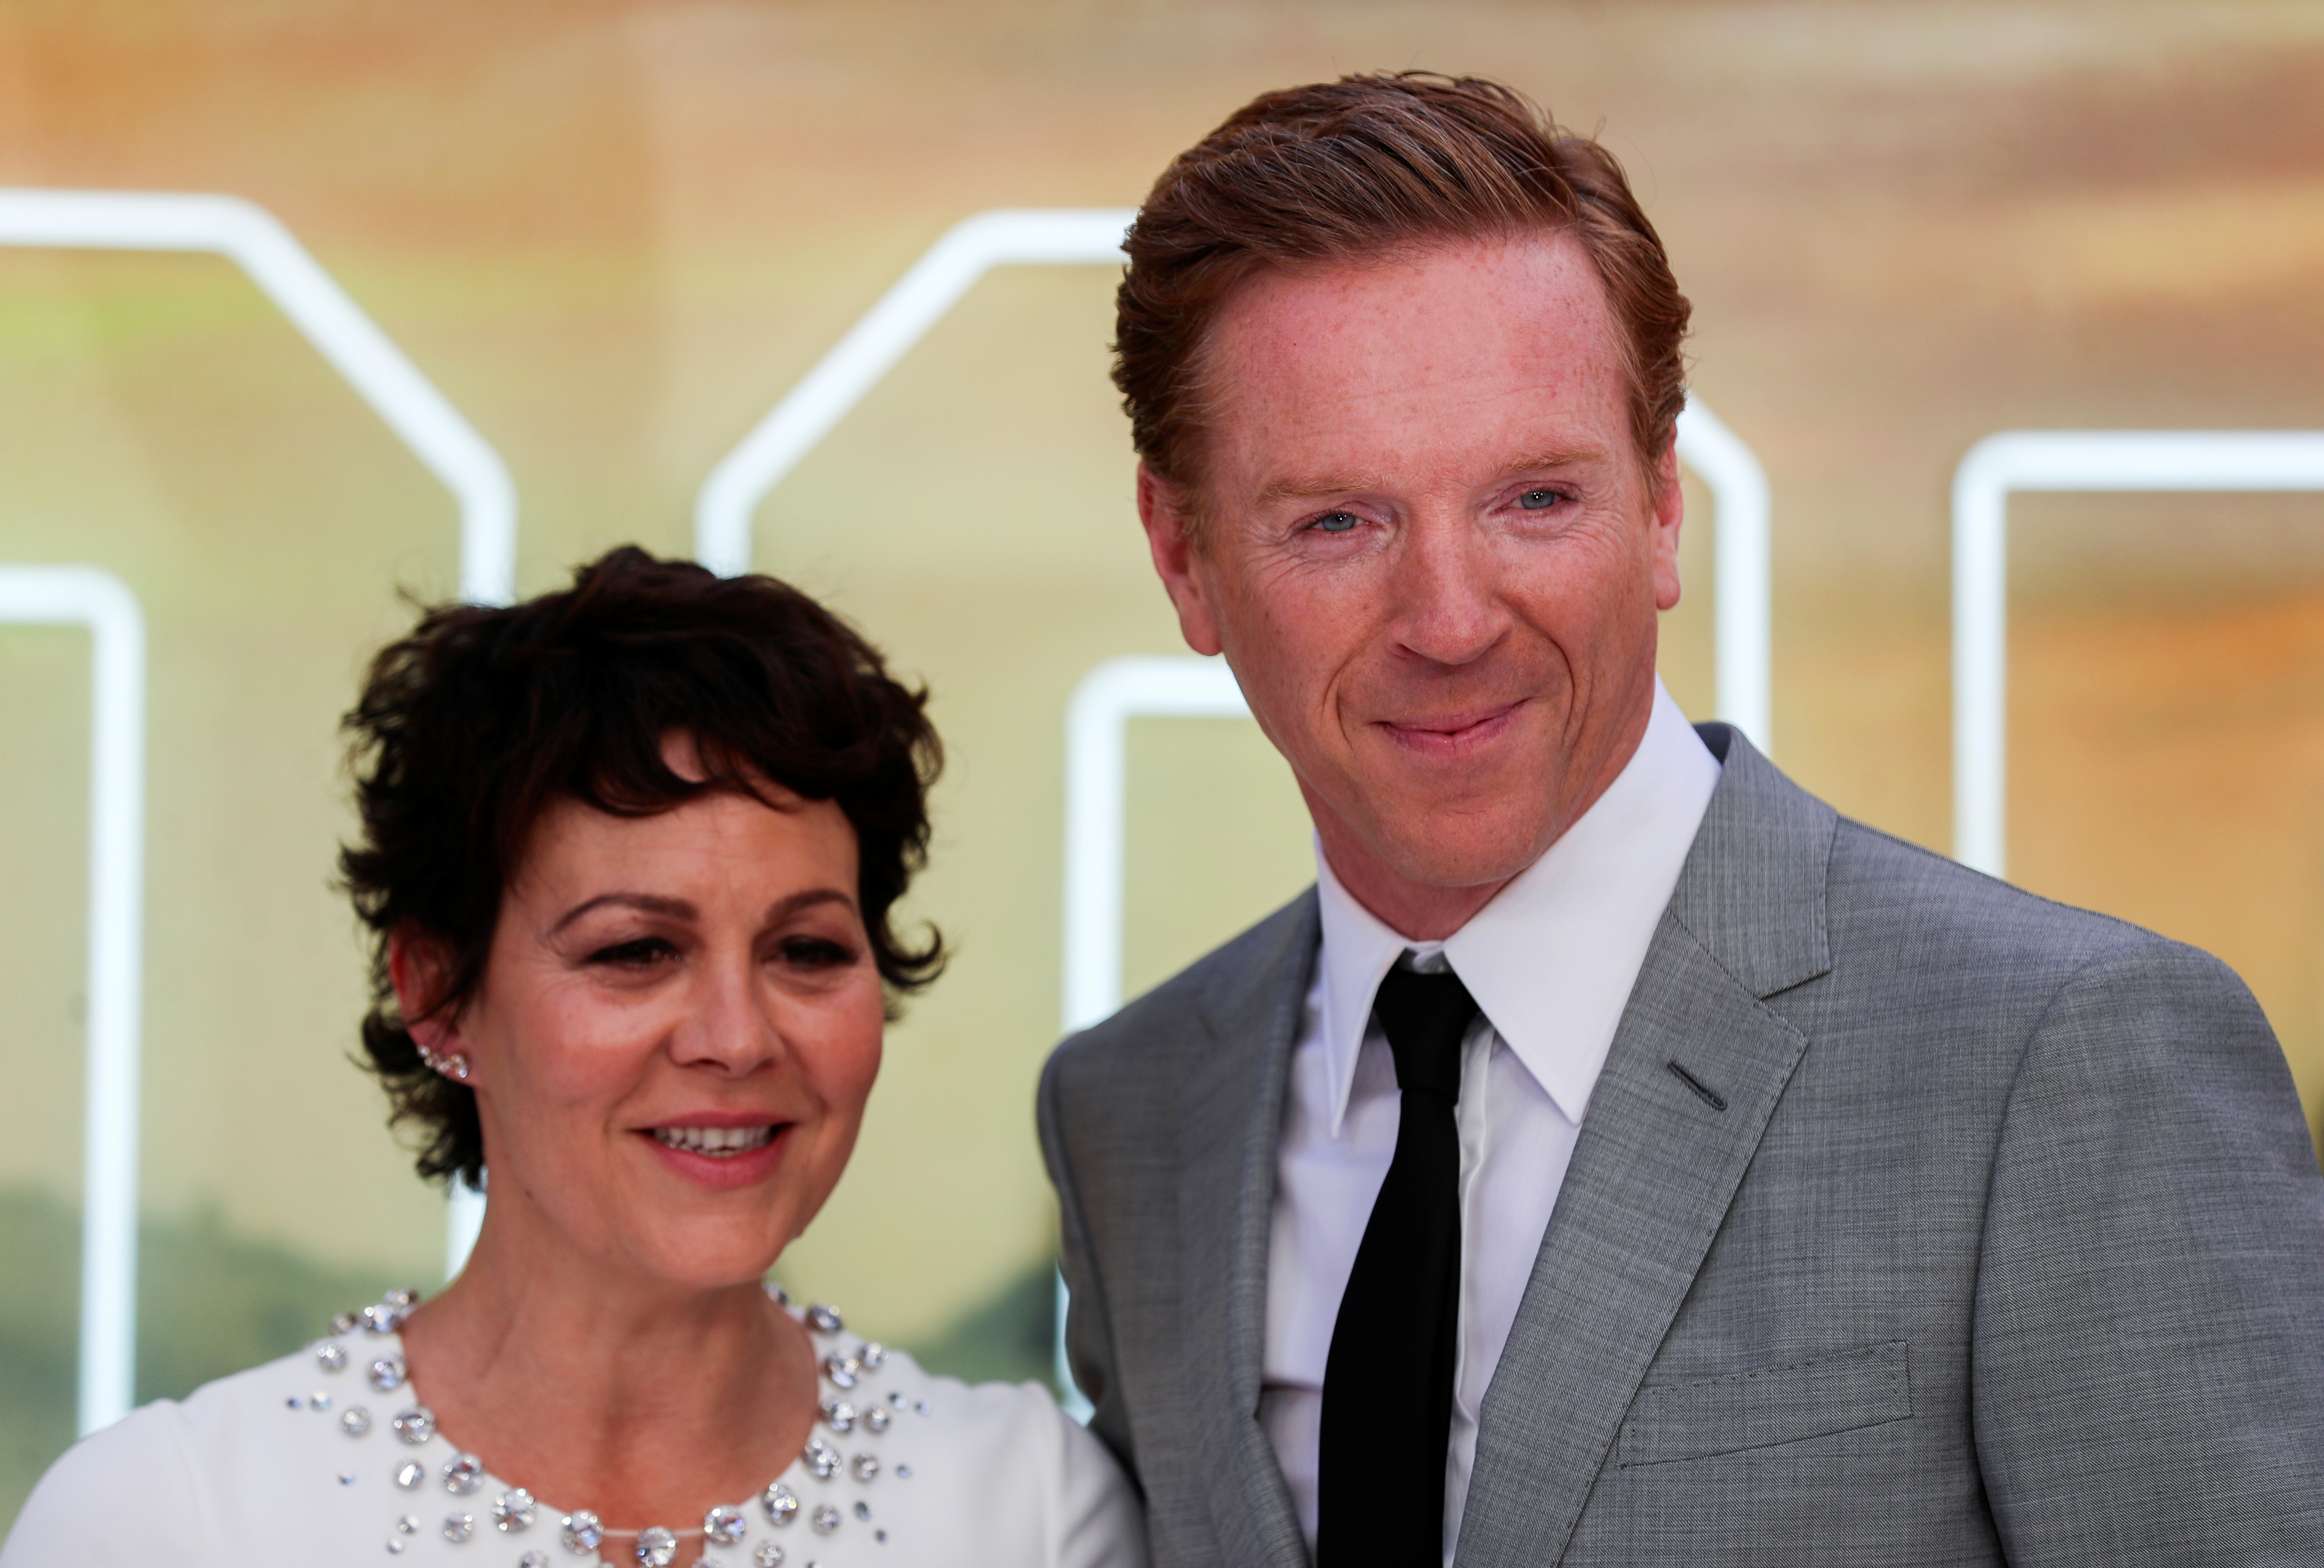 Actor Damian Lewis and his wife Helen McCrory pose as they arrive for the London premiere of